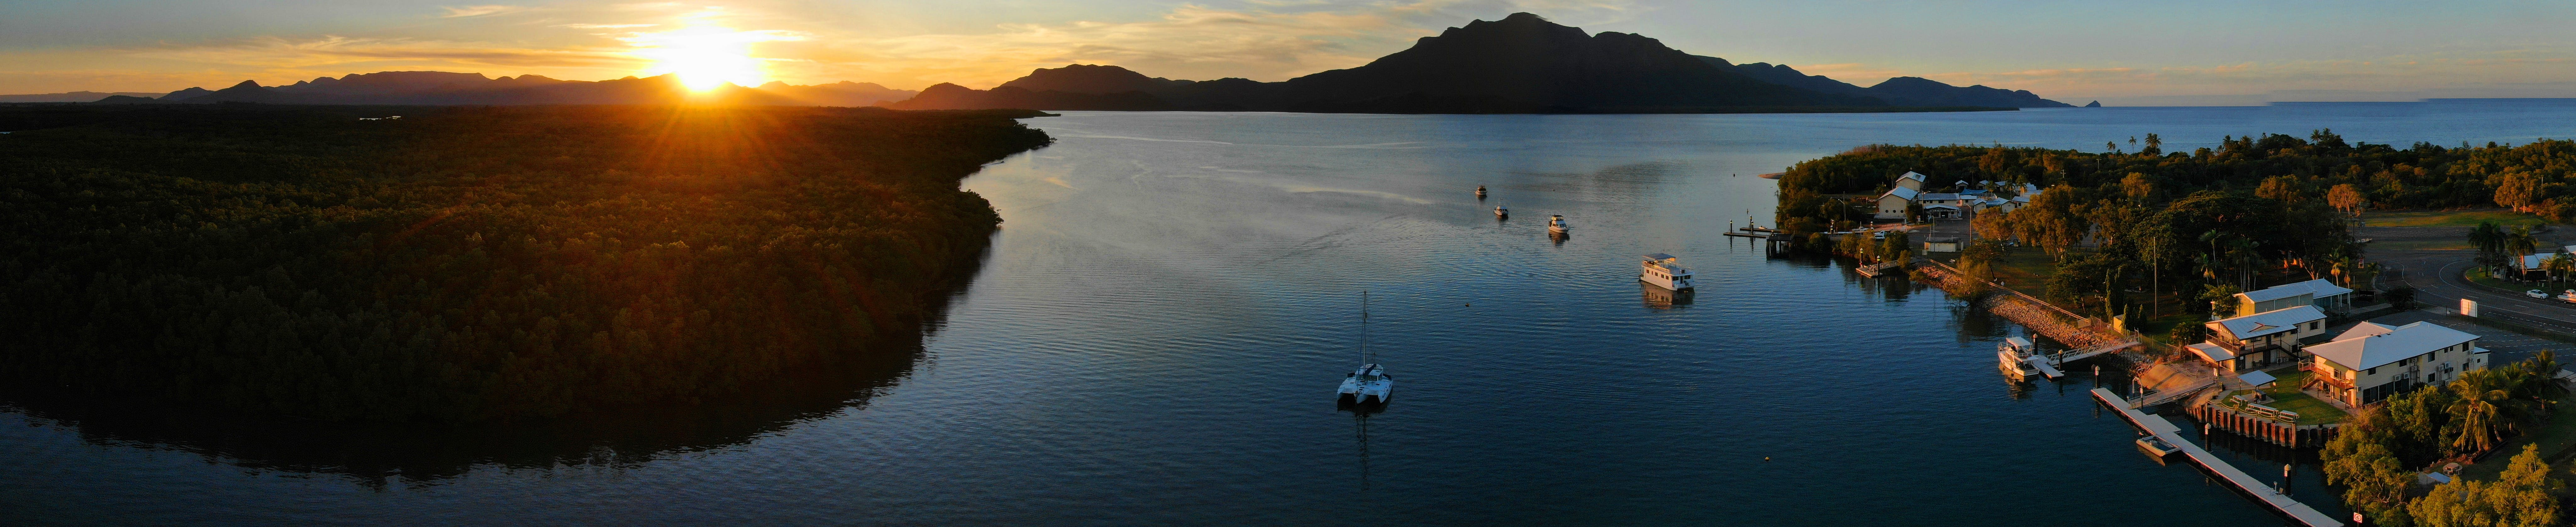 Hinchinbrook Marine Cove Resort - Accommodation Coffs Harbour